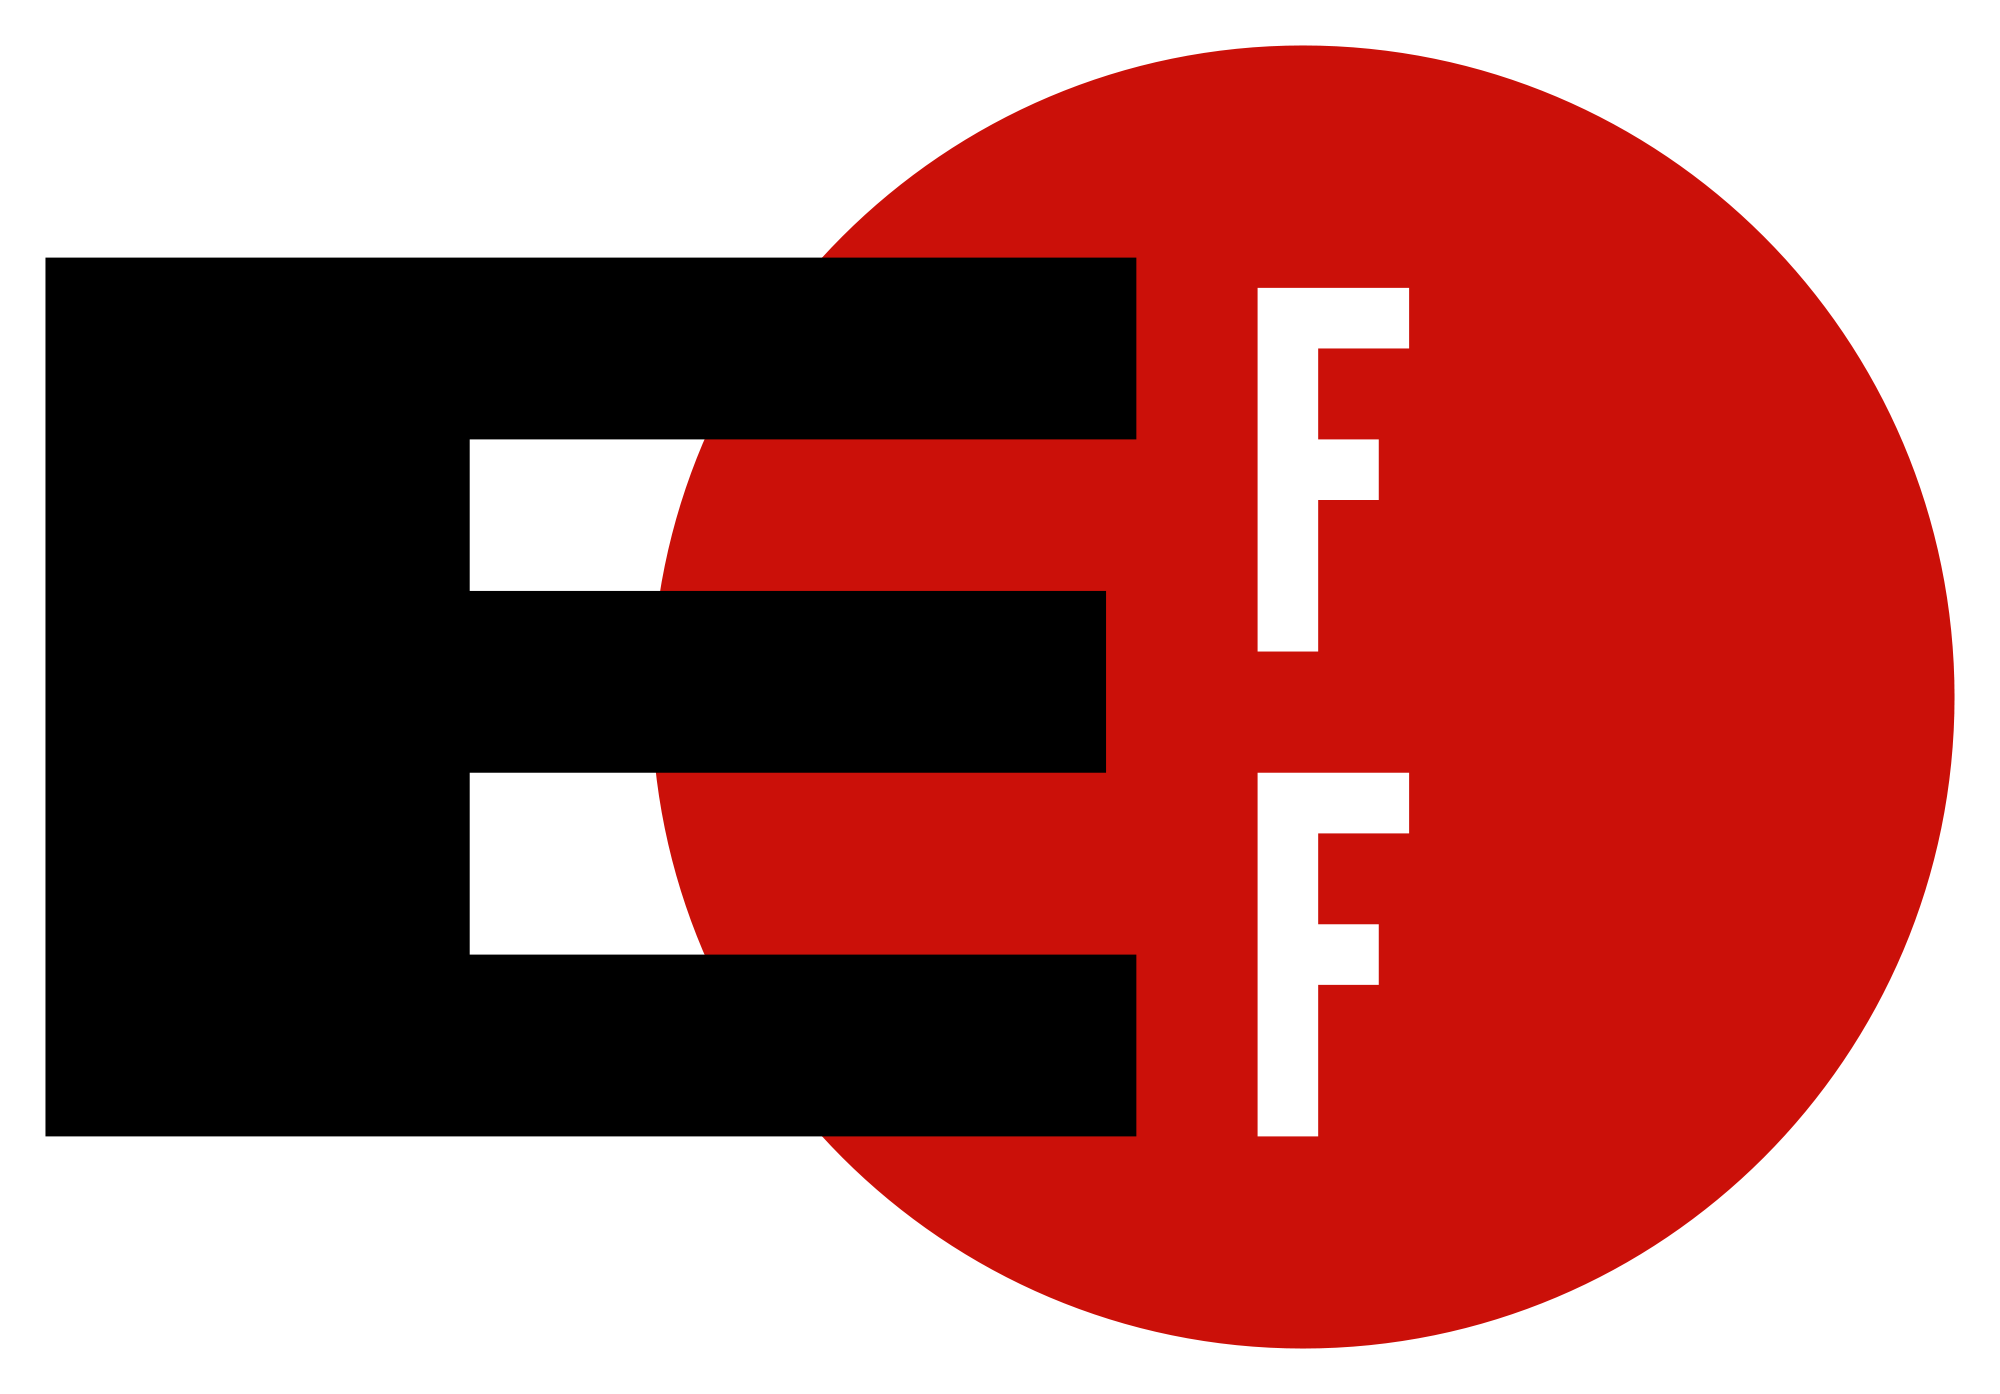 Electronics clipart internet symbol. Electronic frontier foundation know